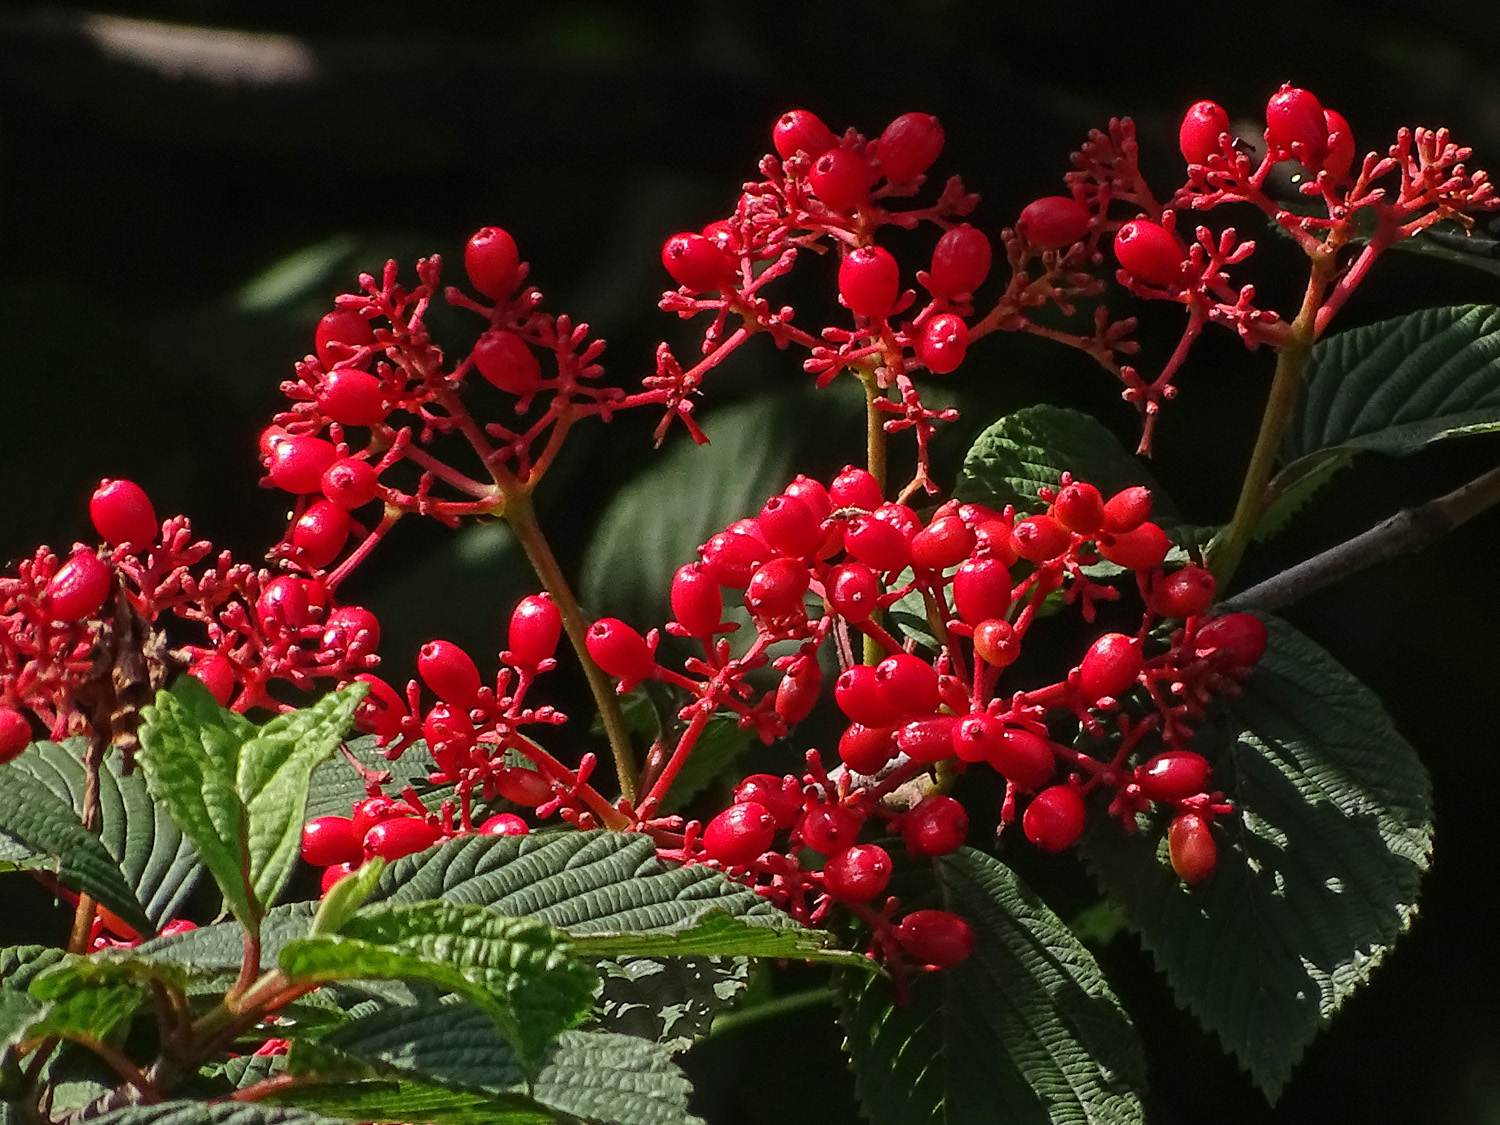 Red berries in Central Park